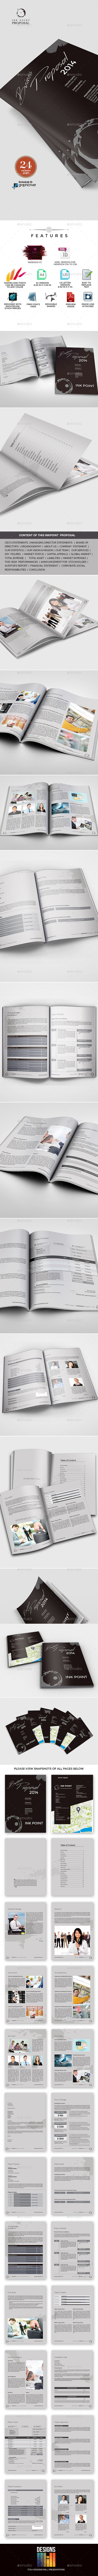 GraphicRiver InkPoint Business Proposal Template 9581030